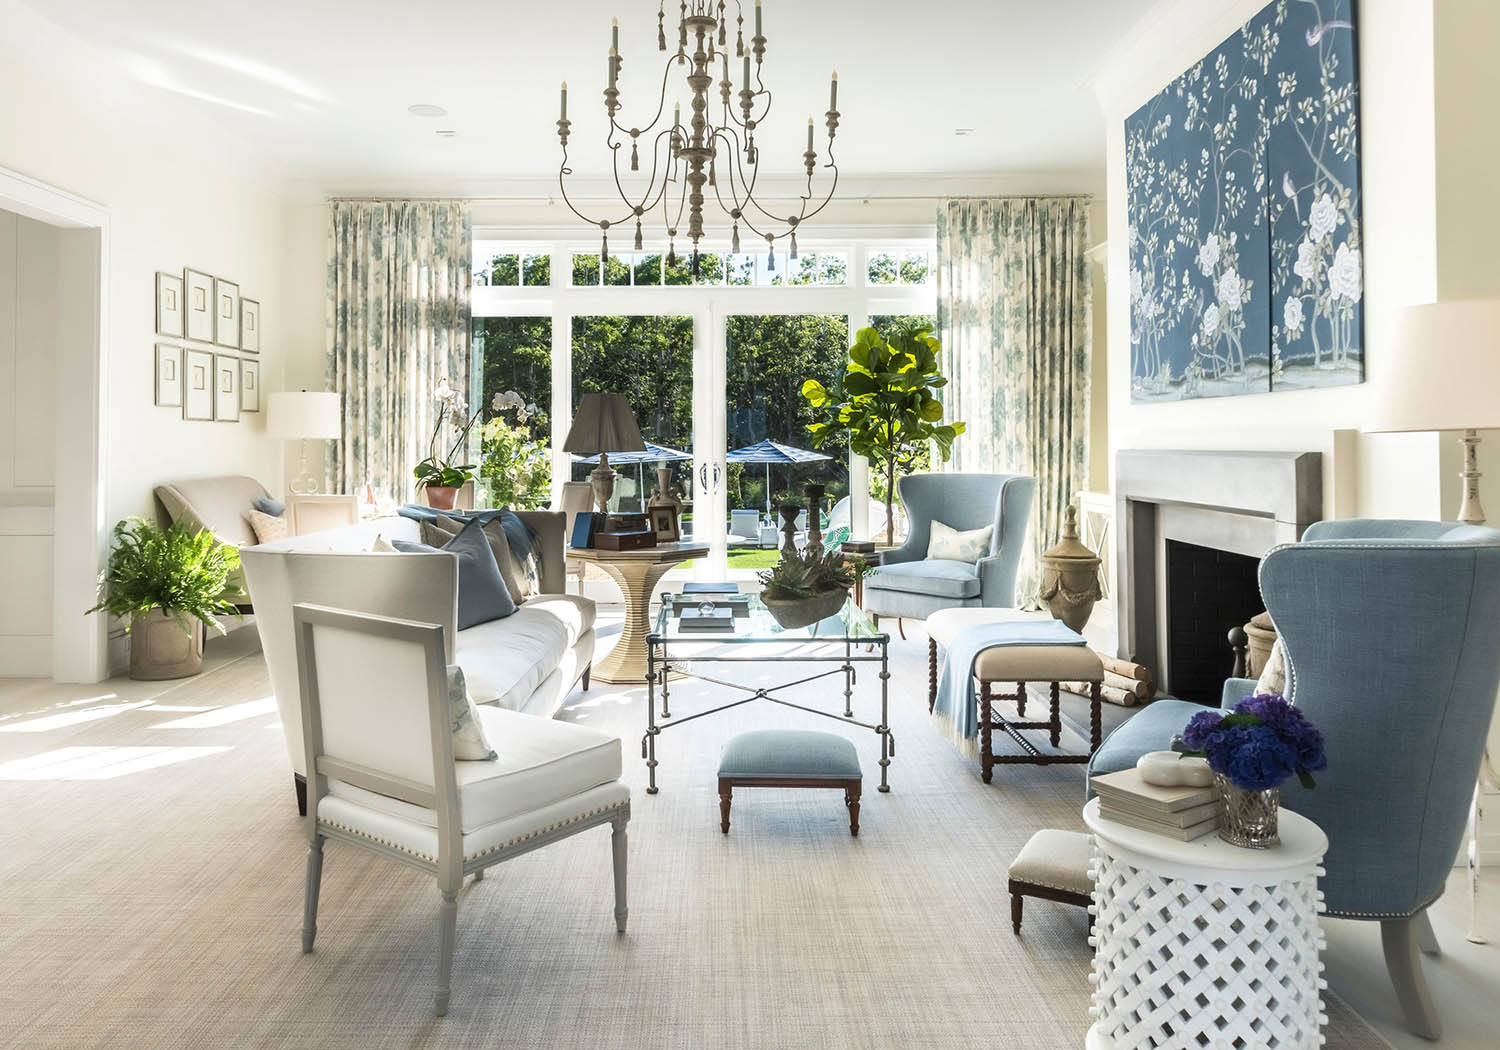 What Is Traditional Interior Design?